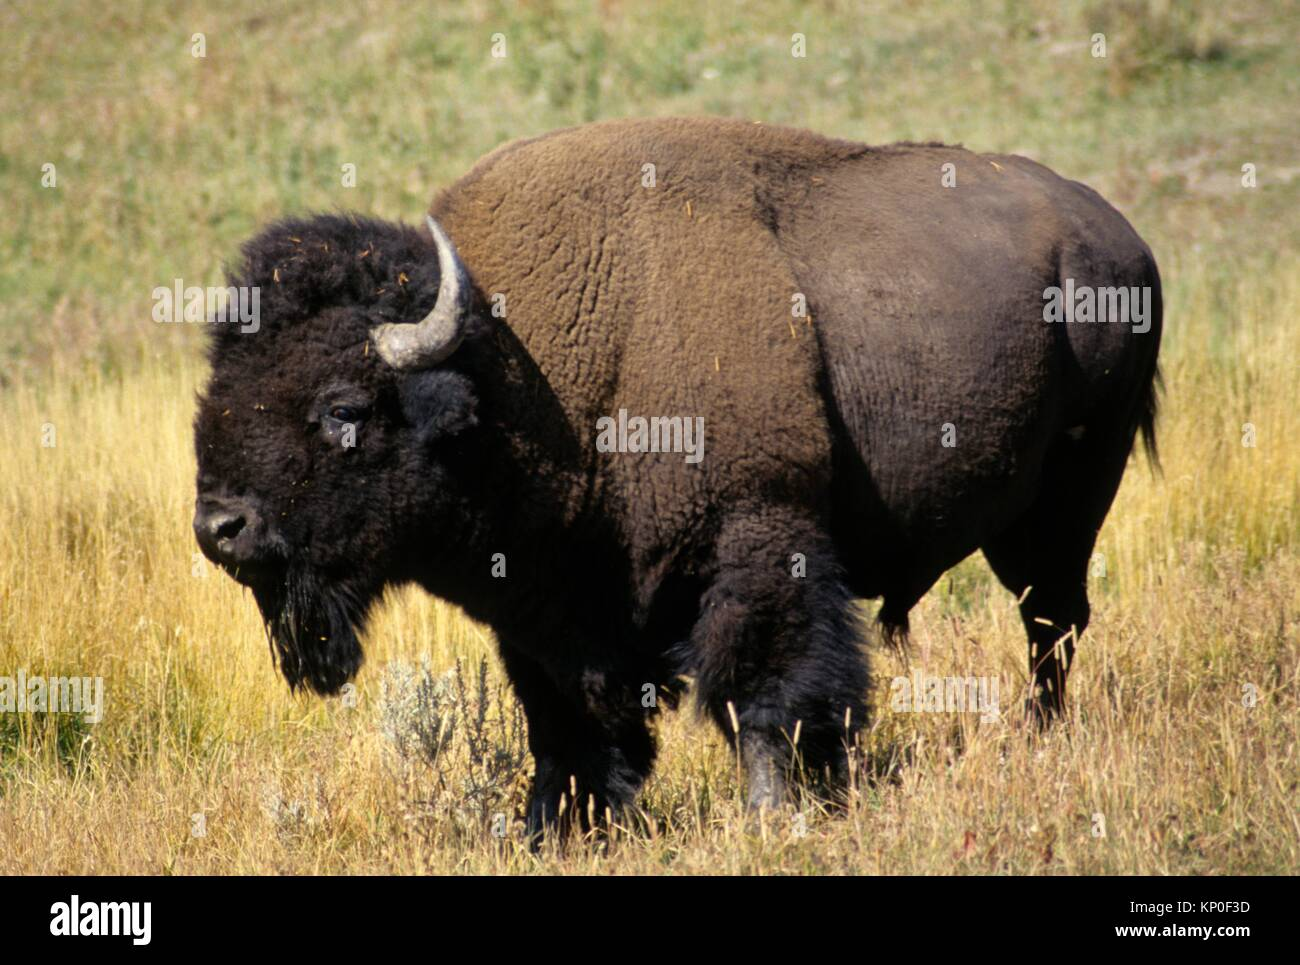 Bison in The Canyon area, Yellowstone National Park, Wyoming. - Stock Image